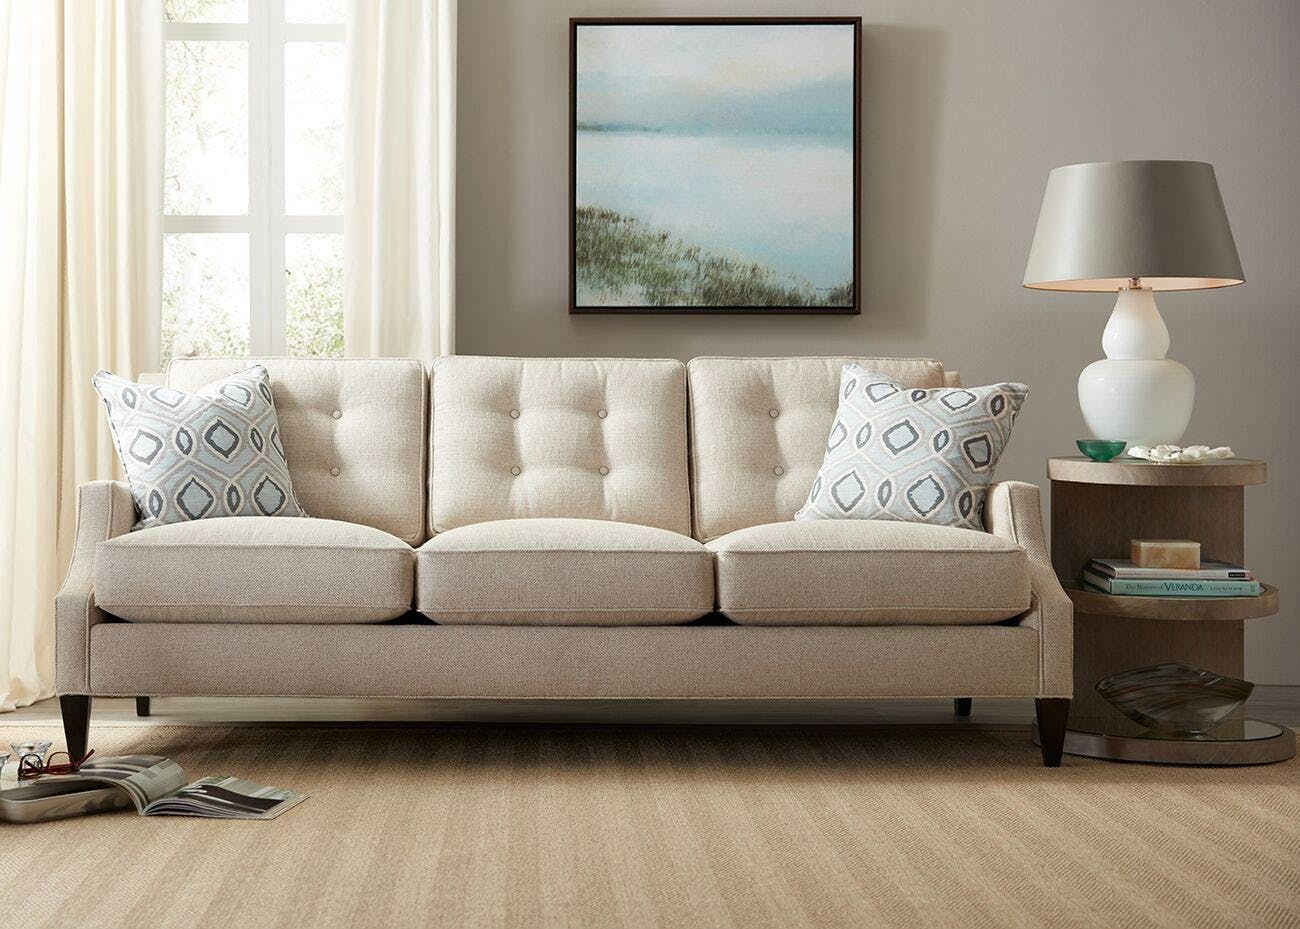 Updated Classics Trendy Transitional Home Furnishings Sam Moore